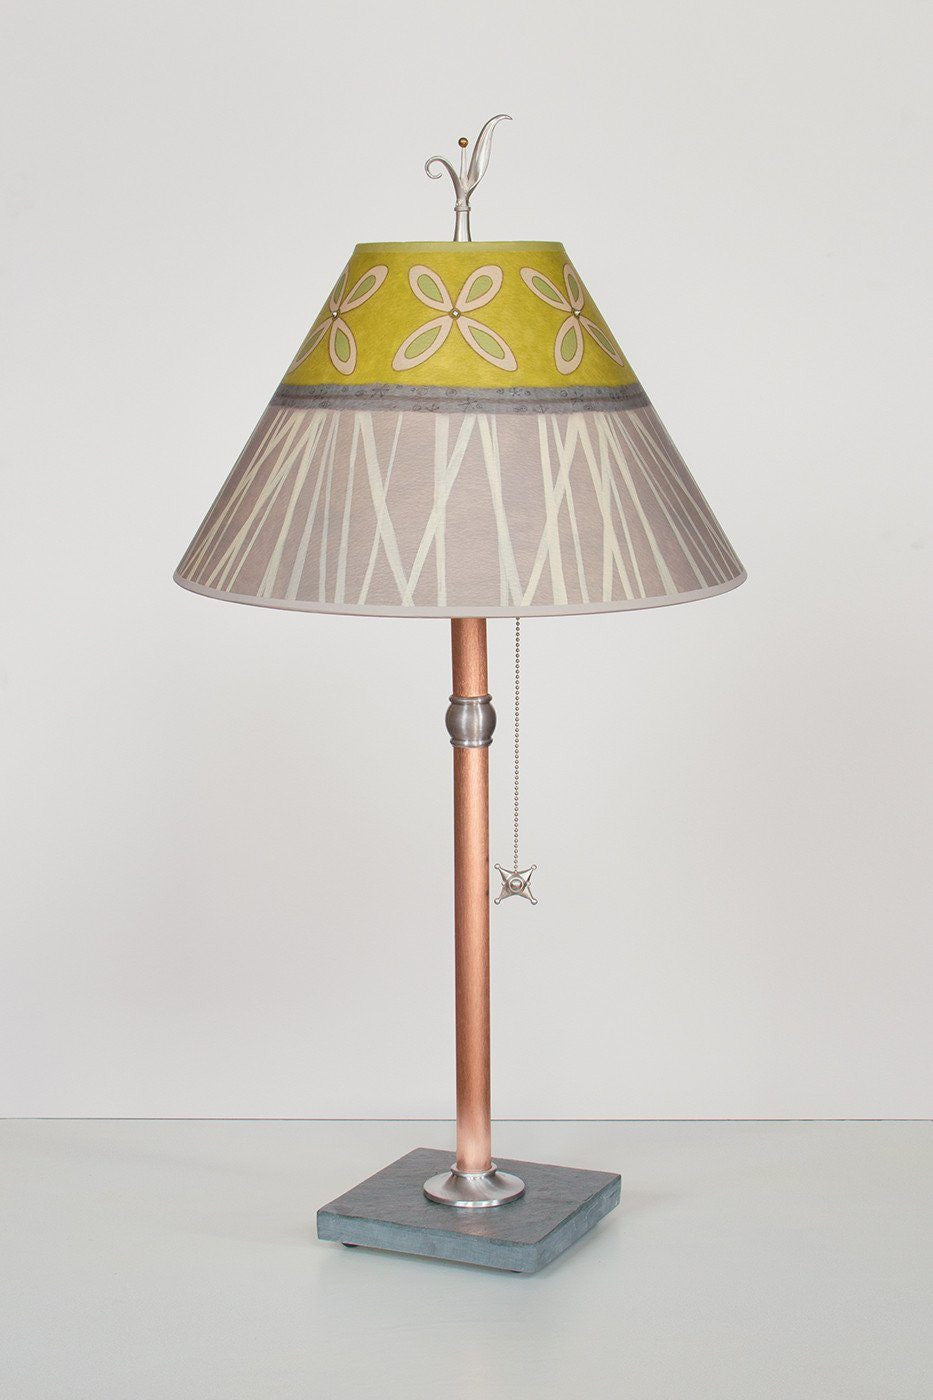 Copper Table Lamp with Medium Conical Shade in Kiwi - Lit